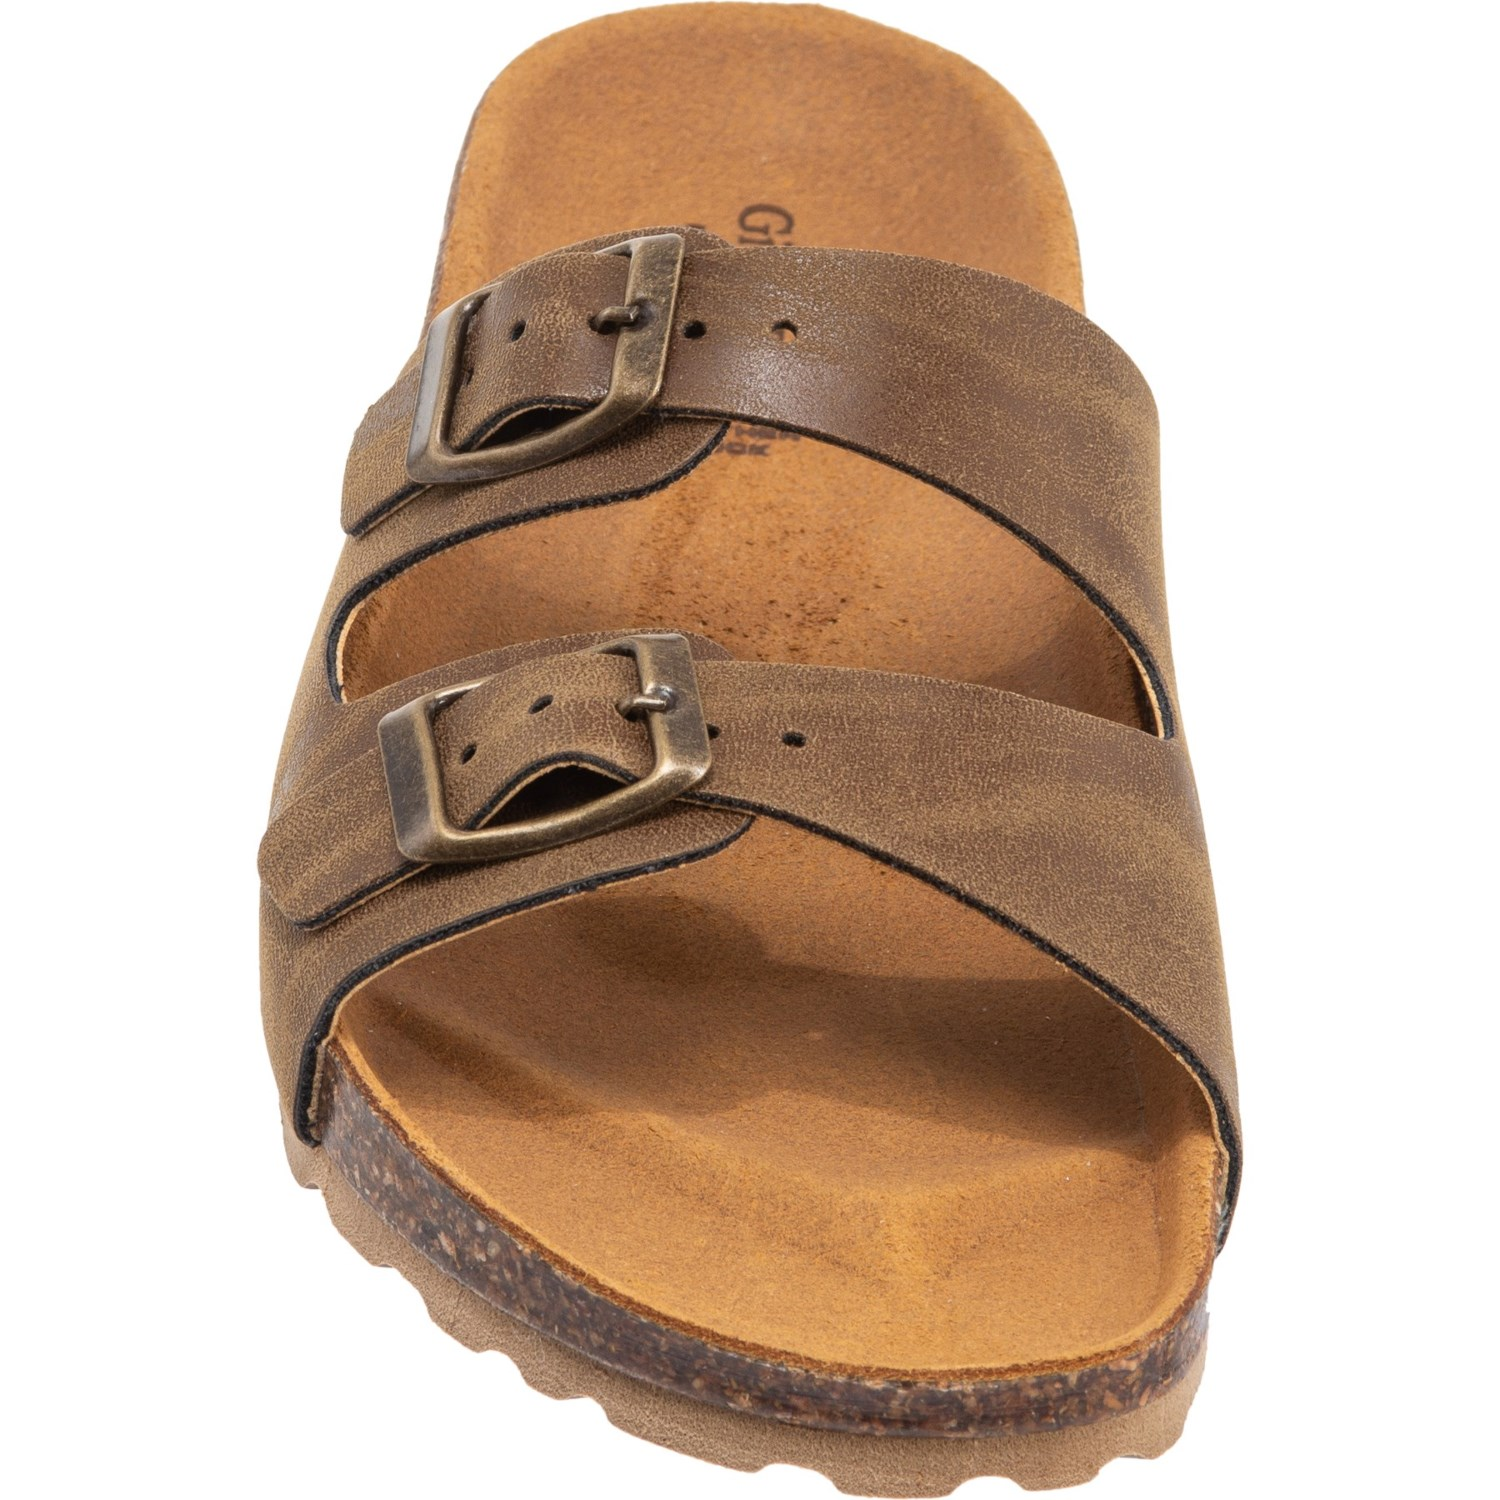 7f11678b11c Made in Italy Double-Buckle Sandals (For Girls) - Save 28%